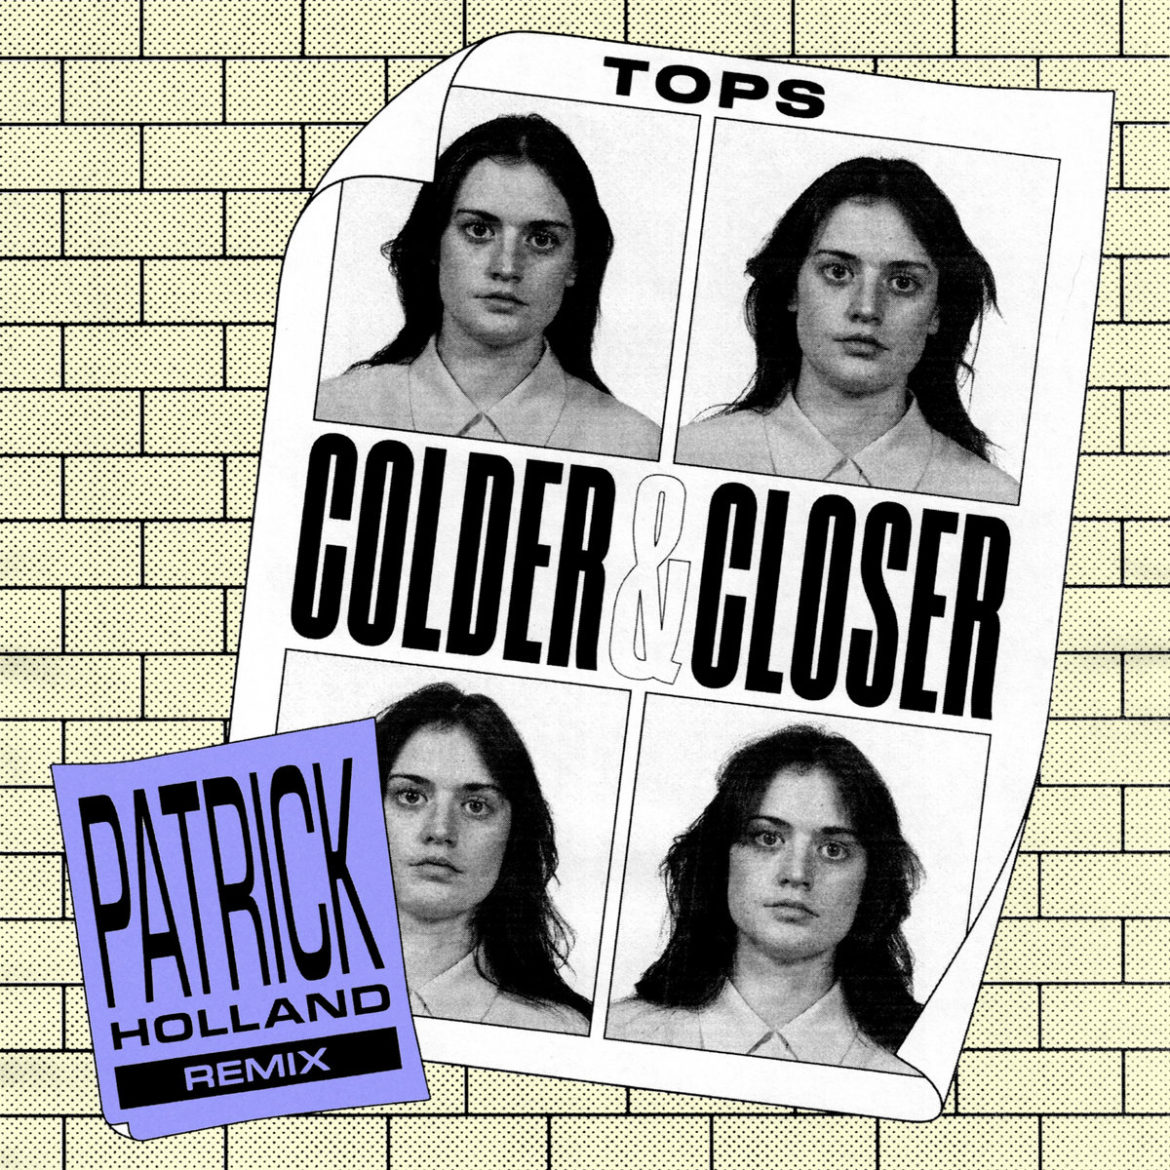 TOPS – Colder & Closer (Patrick Holland Remix)